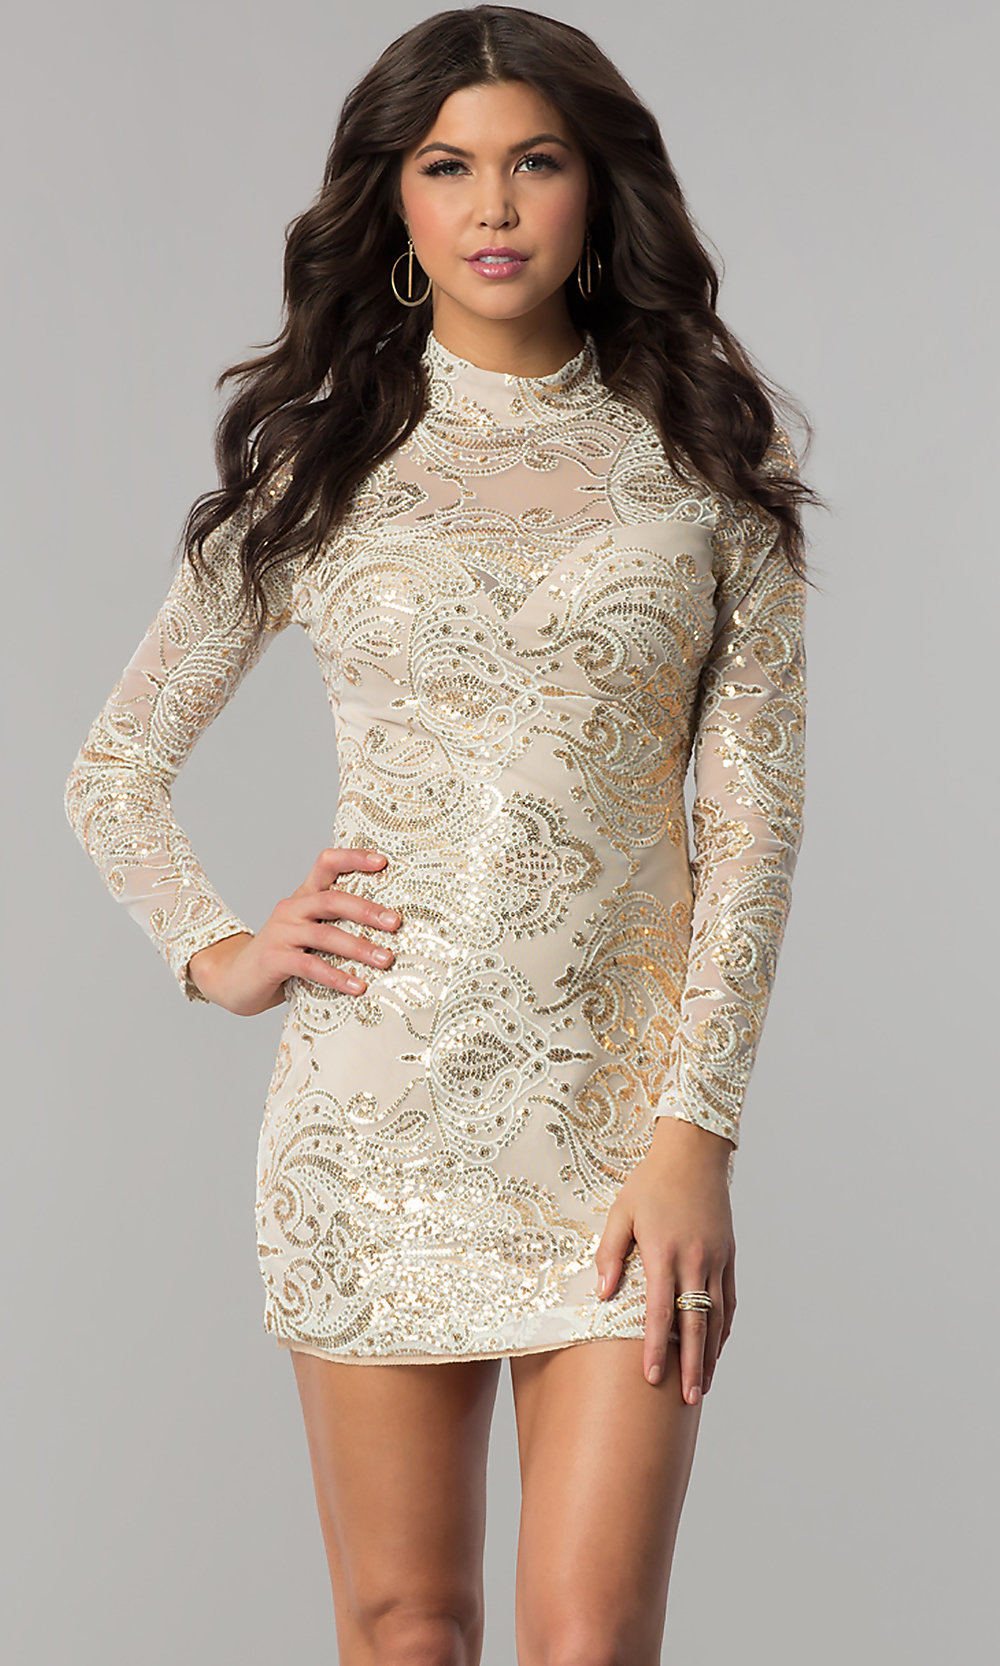 274cb2929c Ivory and Gold Sequin Short Party Dress - PromGirl